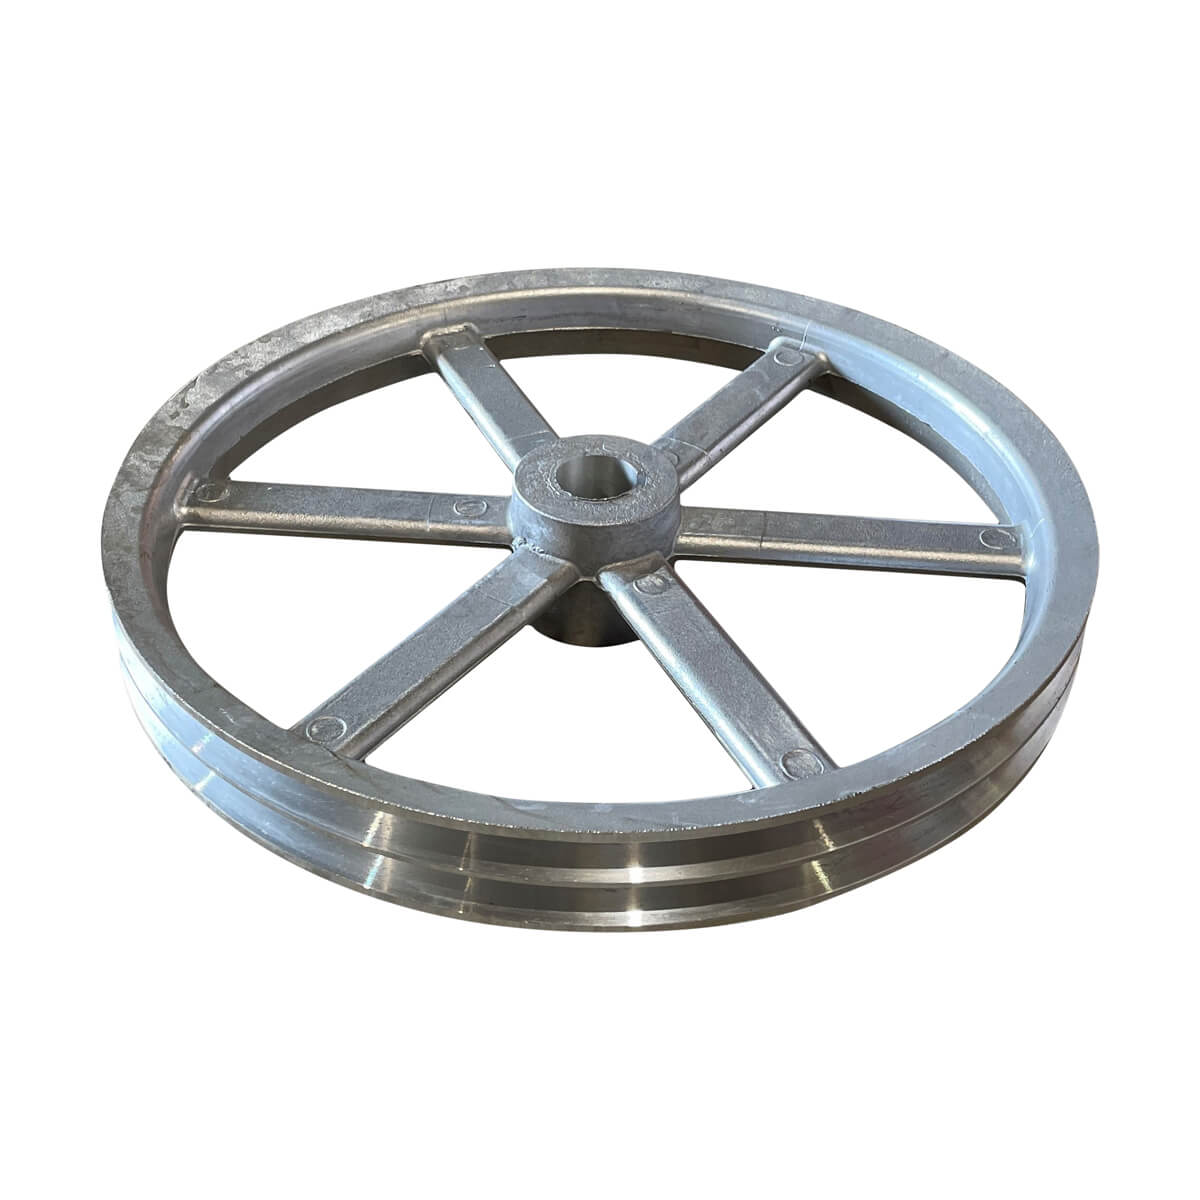 Double B Pulley - 15 X 1.25